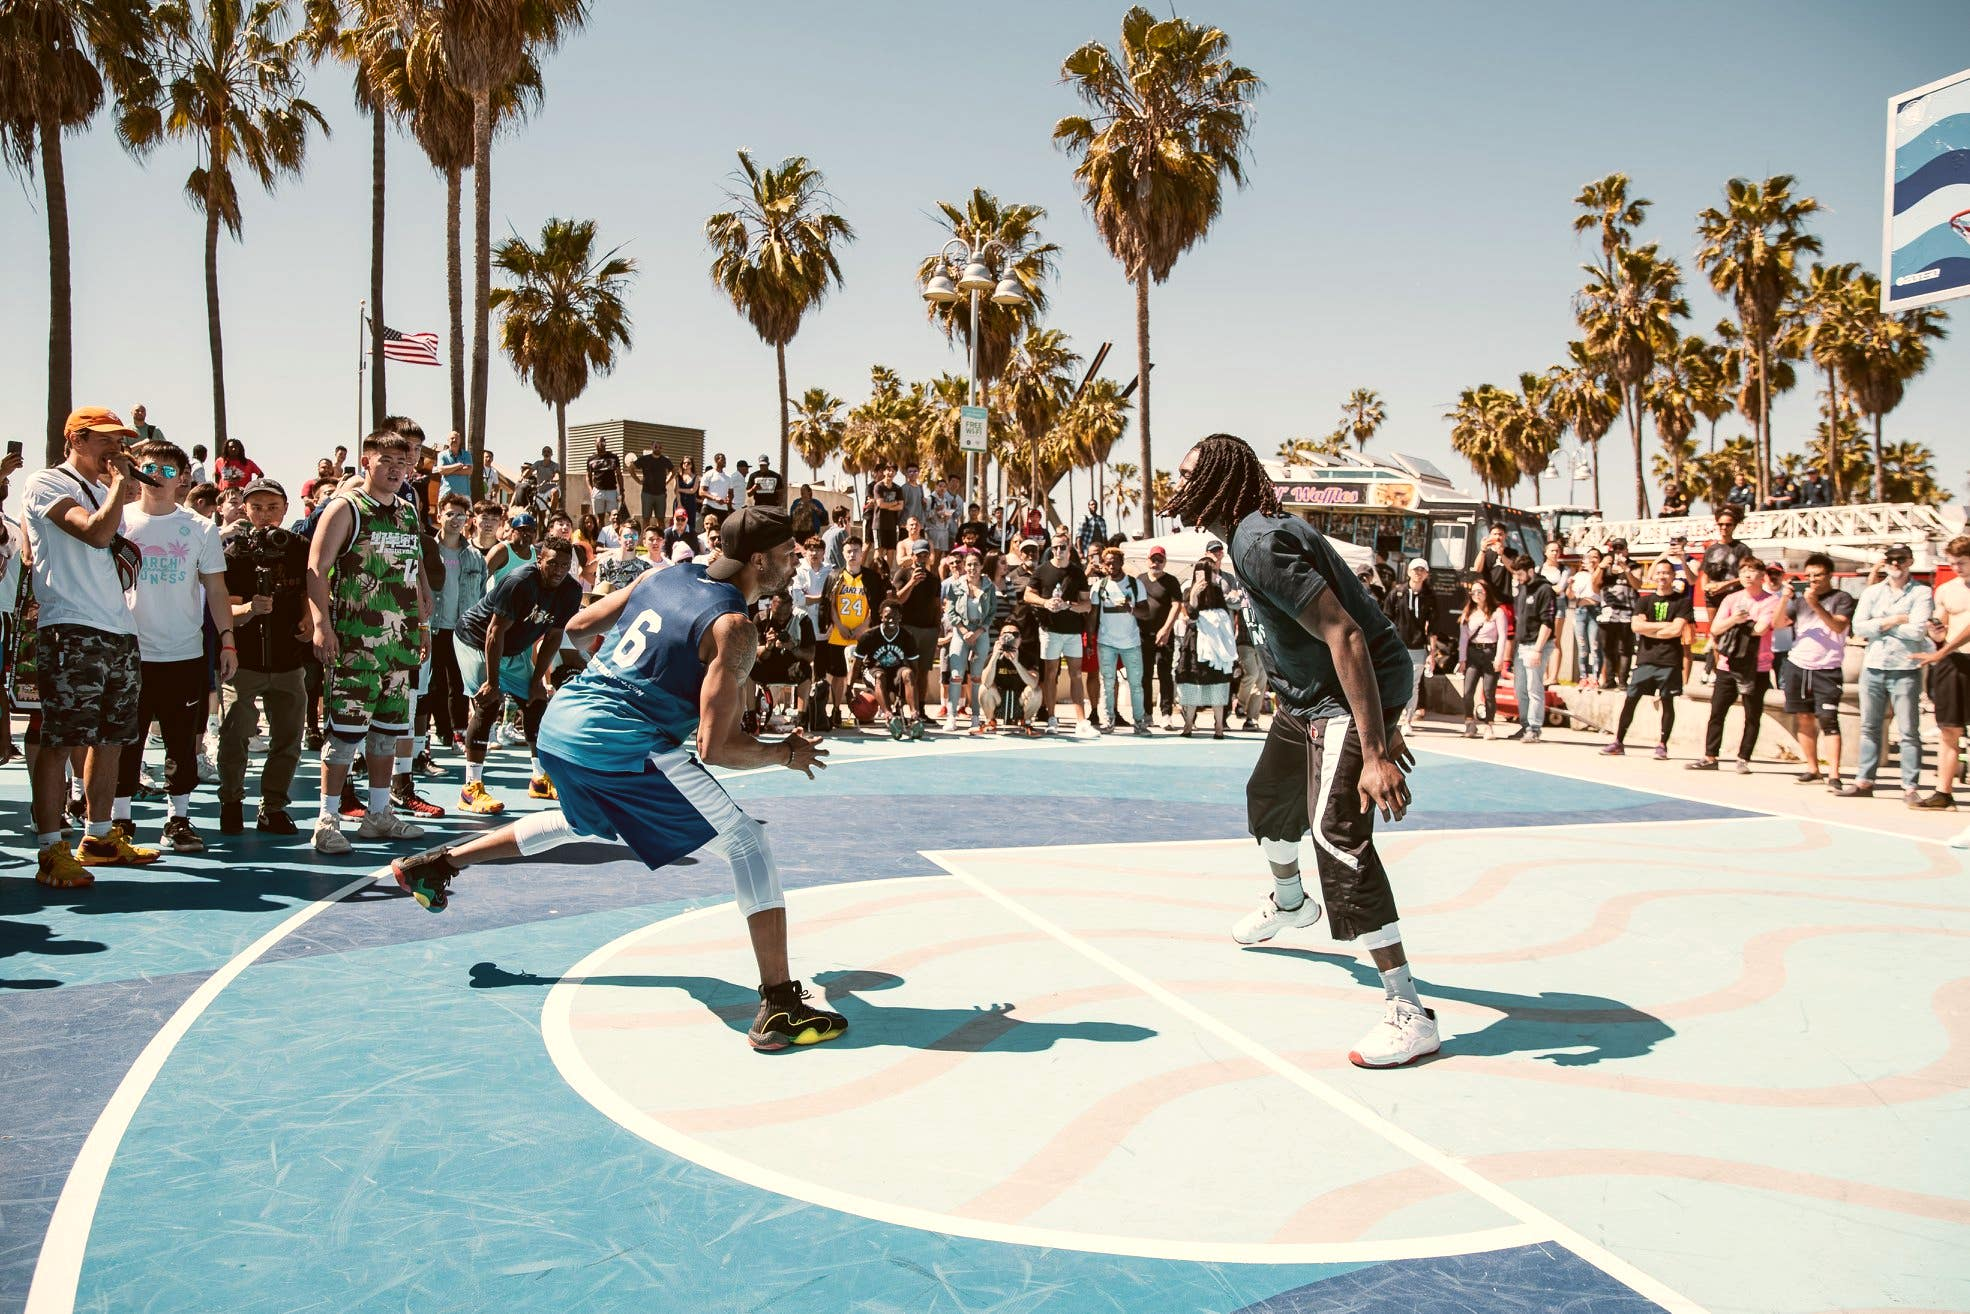 Venice Basketball League in Venice Beach